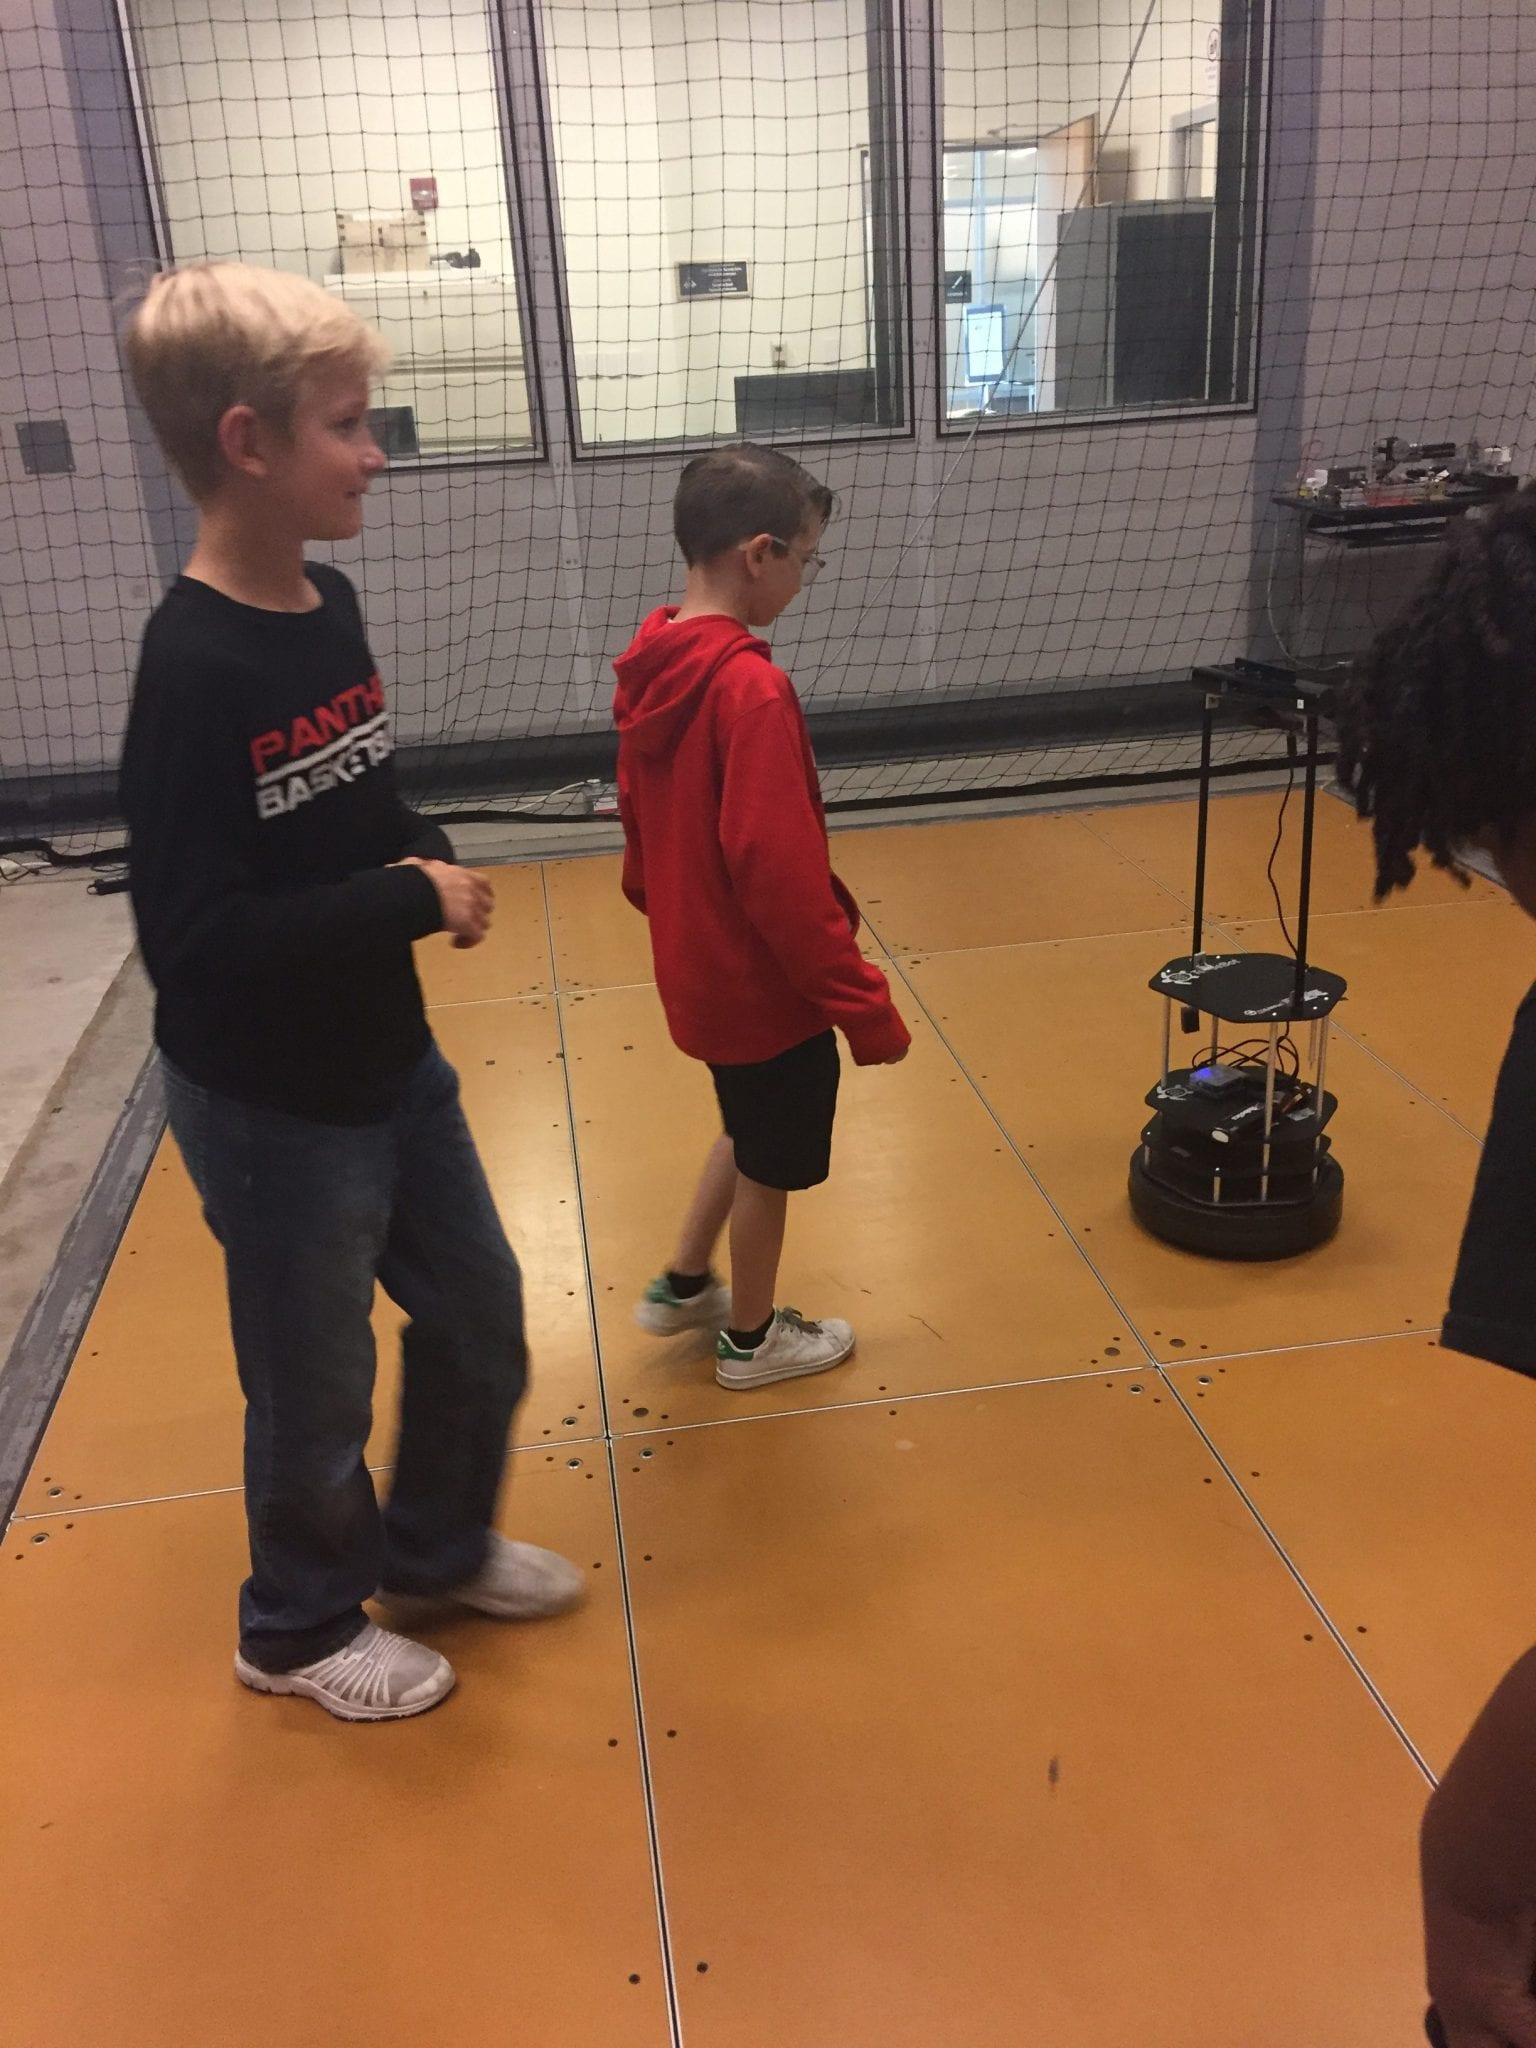 News Multiscale Robotics Automation Lab Inside The Where They Build Robots That Are Smaller Than Pennies Trip Today Was Amazing And Far Exceeded Our Expectations Maze Concluded It Will Be A Not Soon Forgotten By Middle Schoolers You Impacted